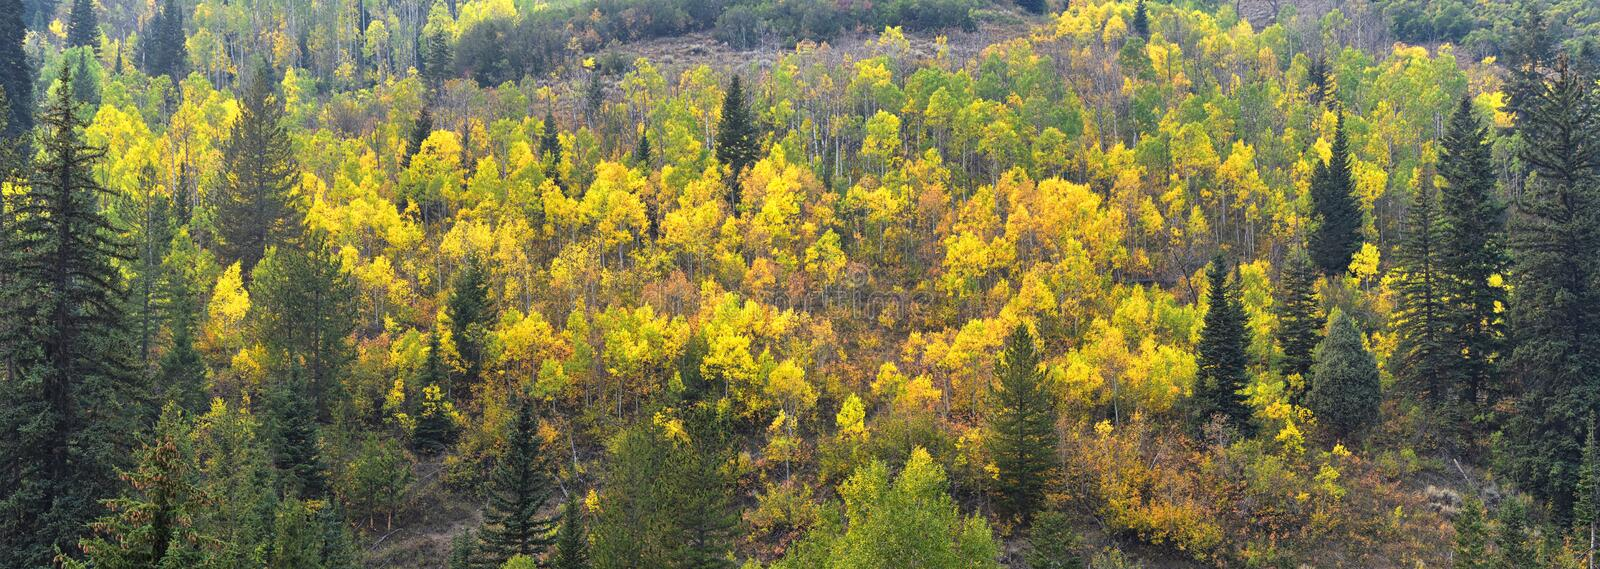 Late Summer early Fall panorama forest views hiking, biking, horseback trails through trees along Highway 40 near Daniels Summit b. Etween Heber and Duchesne in stock photos